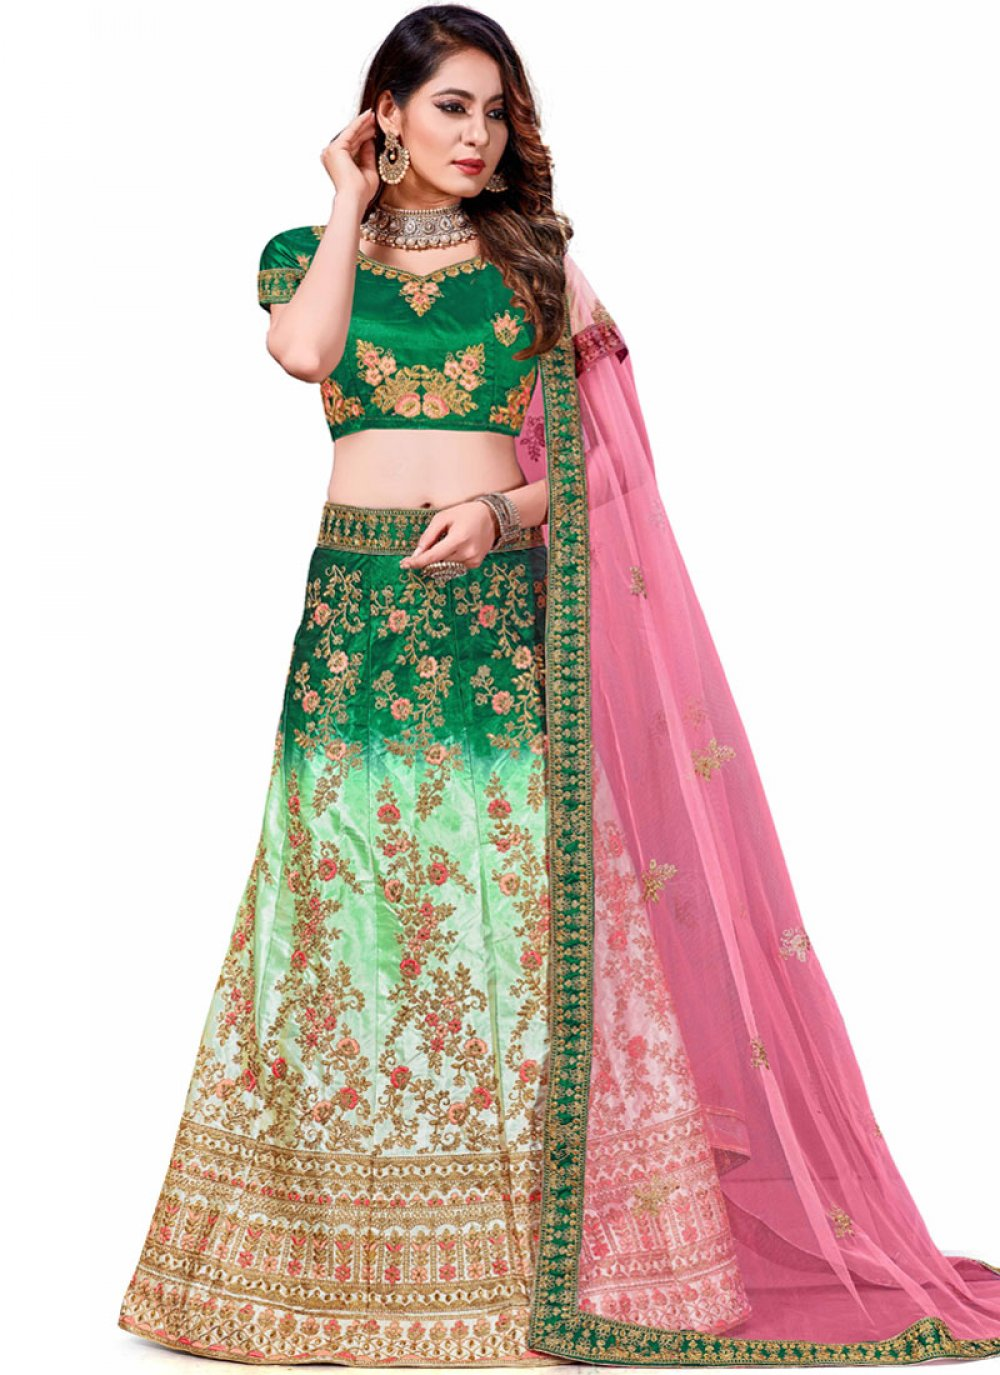 Green and Turquoise Festival Trendy Lehenga Choli